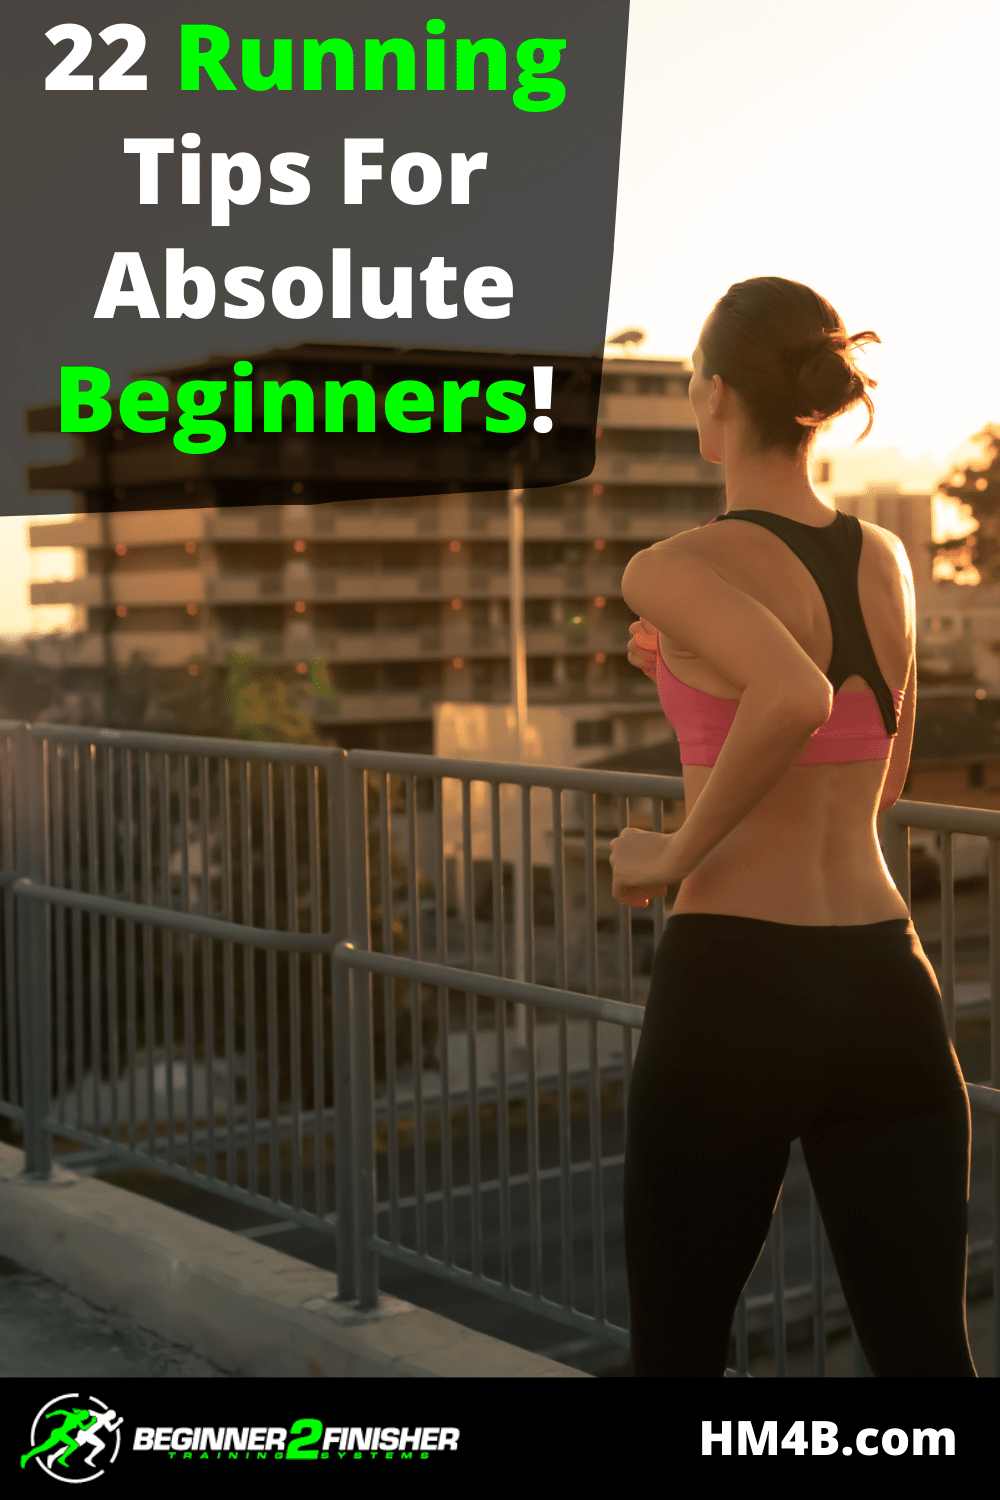 22 Running Tips For Absolute Beginners